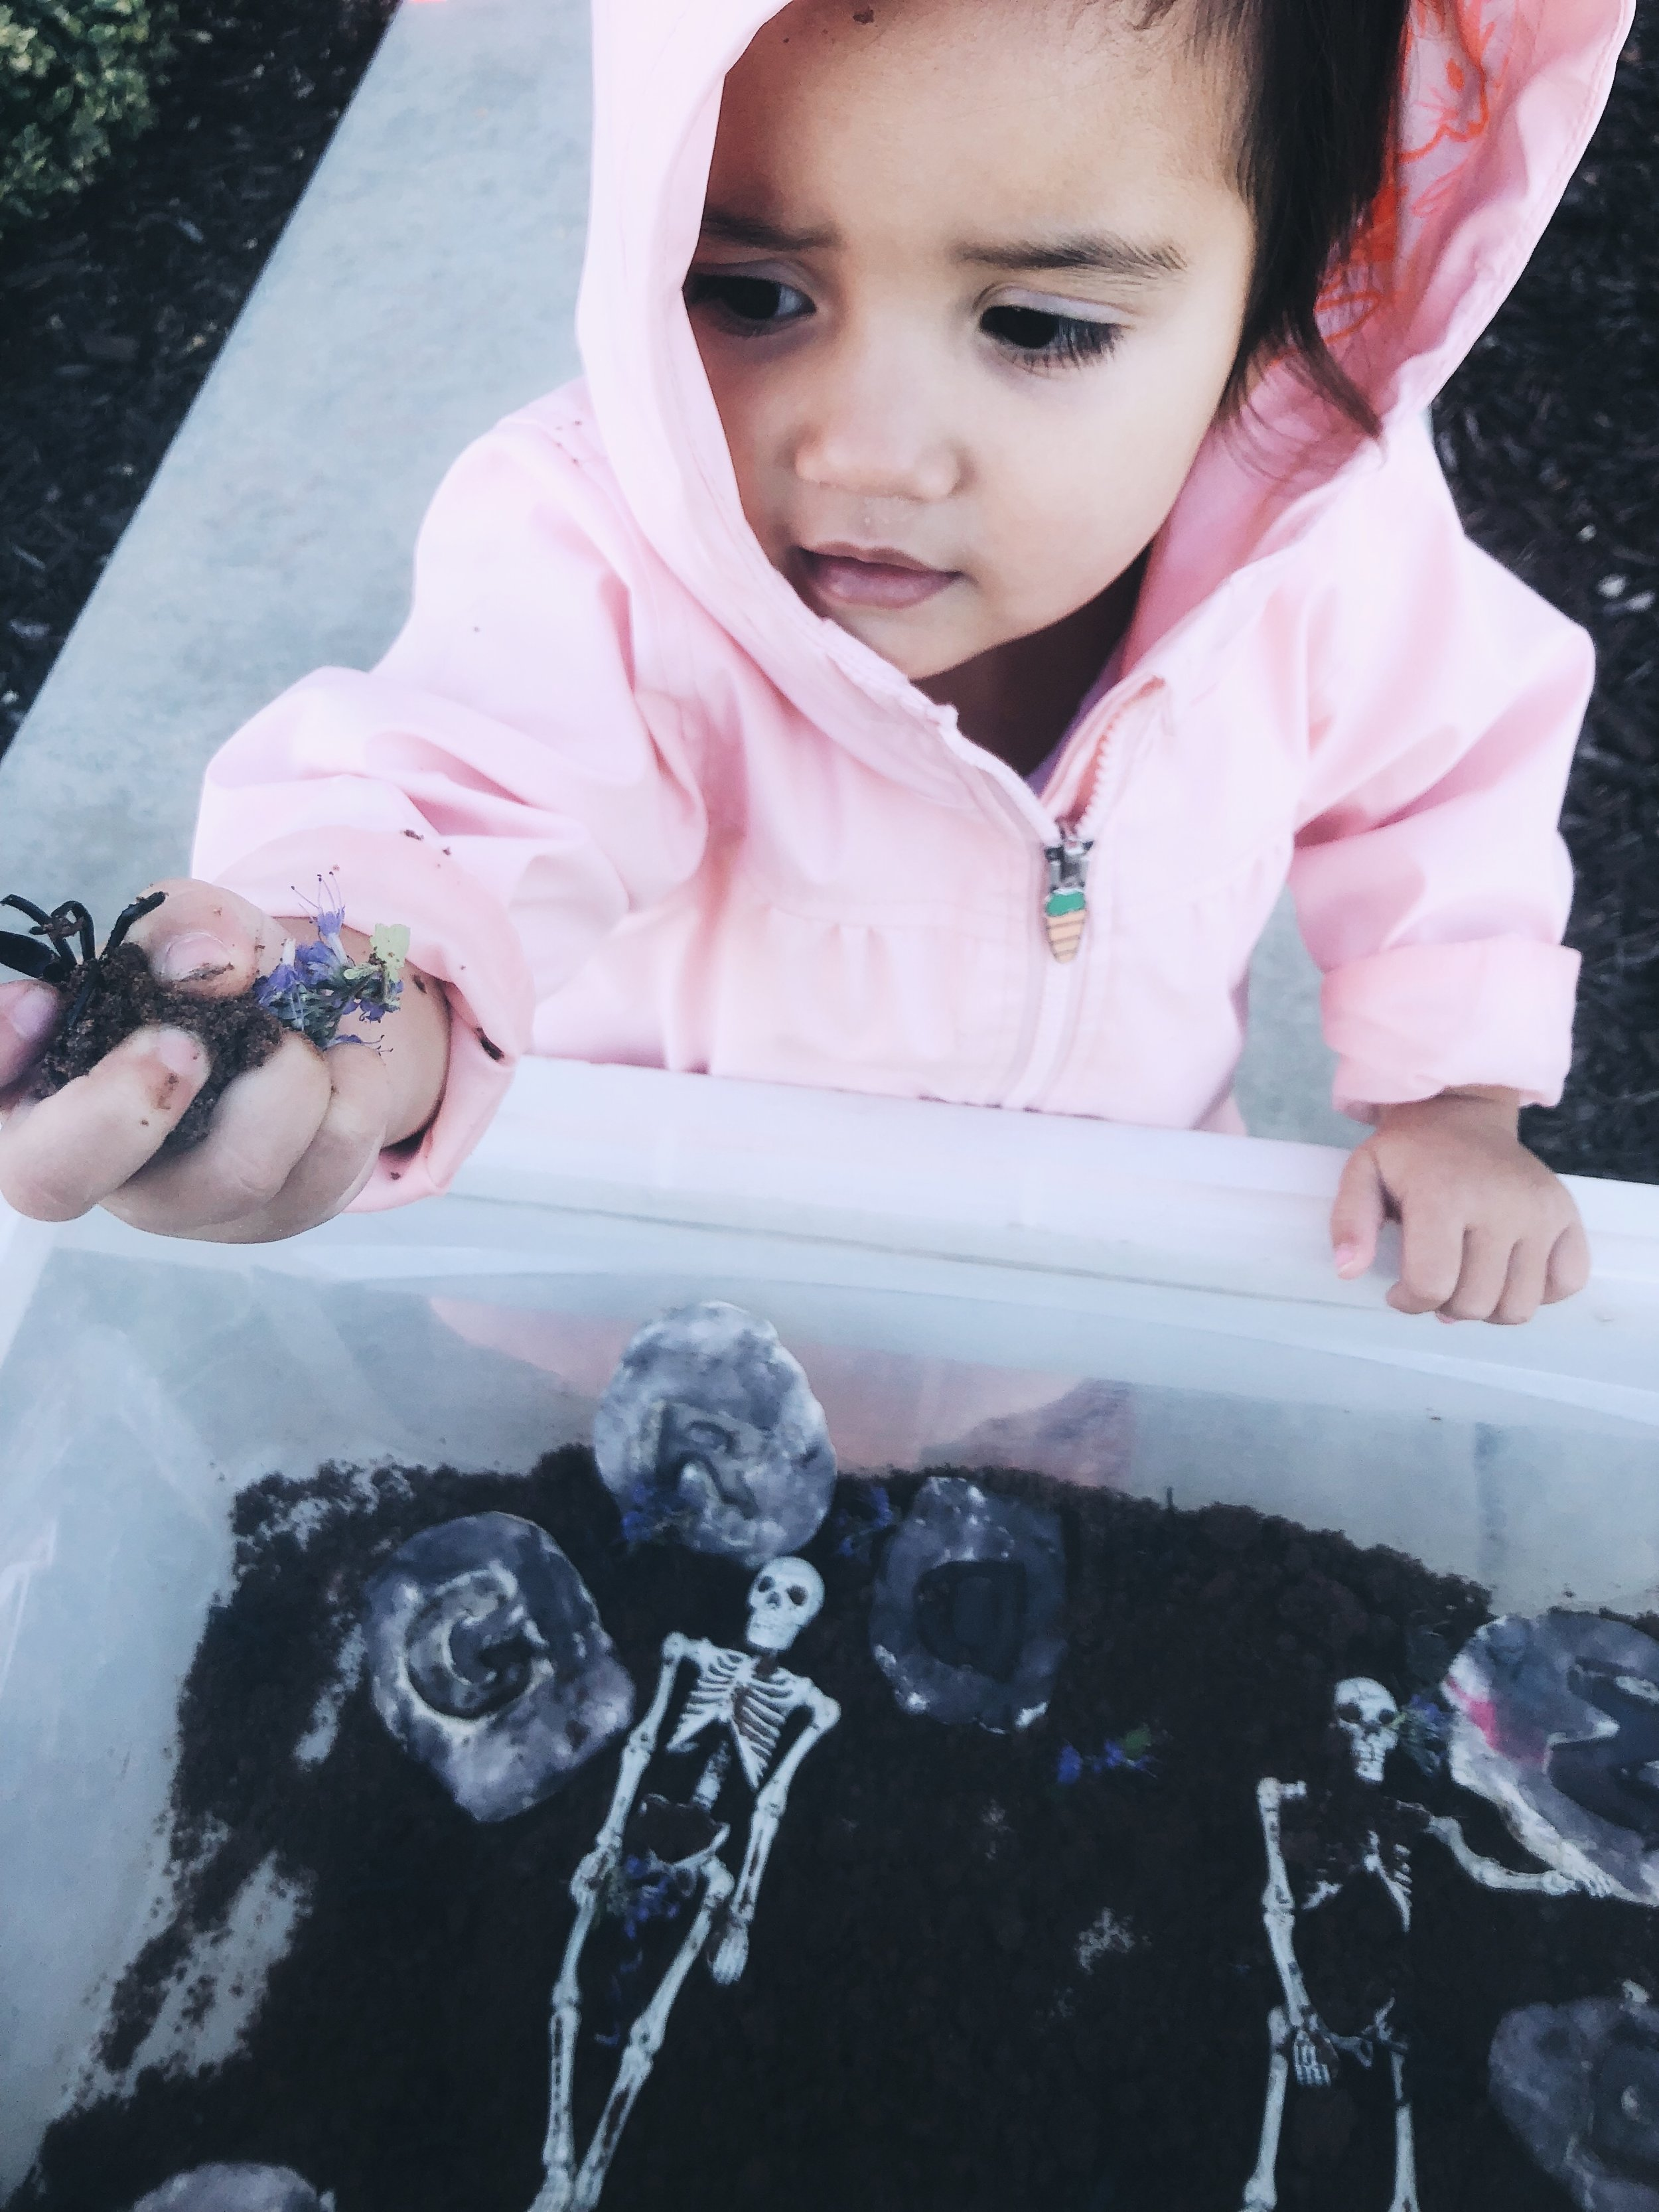 """She loved squishing the """"dirt"""" We also added in some spider rings, skeletons, and mini flowers for an added sensory experience!"""